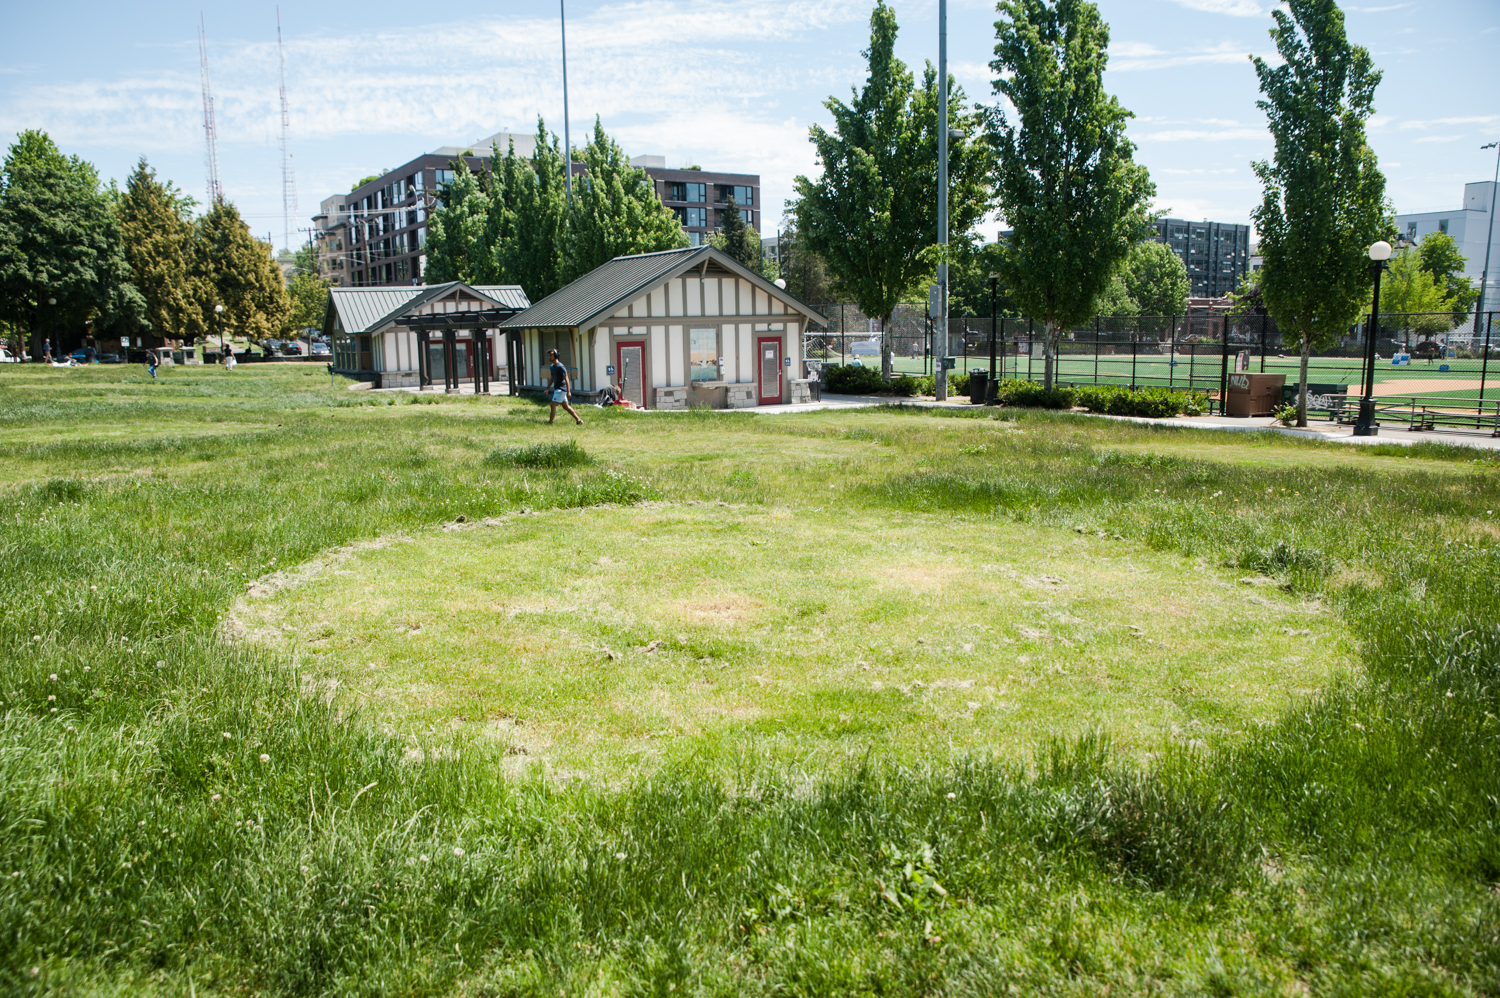 Many of our parks have seen overgrowth in the past few months as self-isolation and quarantine has kept maintenance teams home along with the rest of us. Earlier this week, neighbors of Capitol Hill's Cal Anderson Park noticed that the park's grass had finally been mown - kinda. 'Social distancing circles' were mowed into the park's lawn, as a way to encourage maintaining six feet of space between those laying or sitting in the park. For now, Seattle Parks & Rec is trying out this model, but still encouraging folks to 'keep it moving' while in parks. (Image: Elizabeth Crook / Seattle Refined)